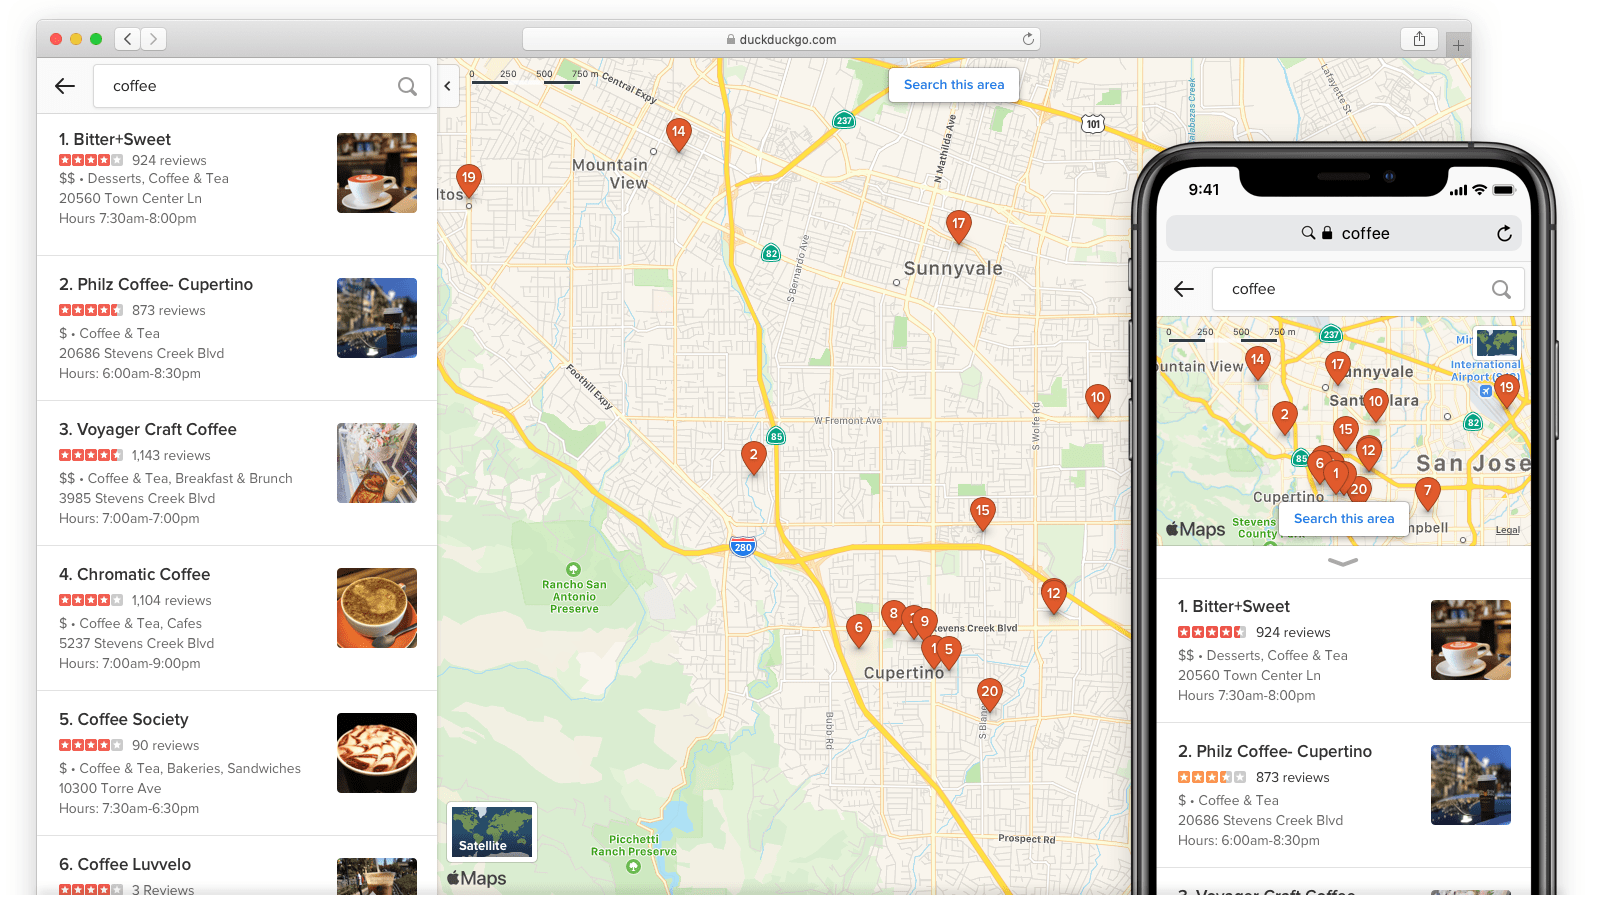 Screenshot showing multiple location results for a search for 'coffee'.